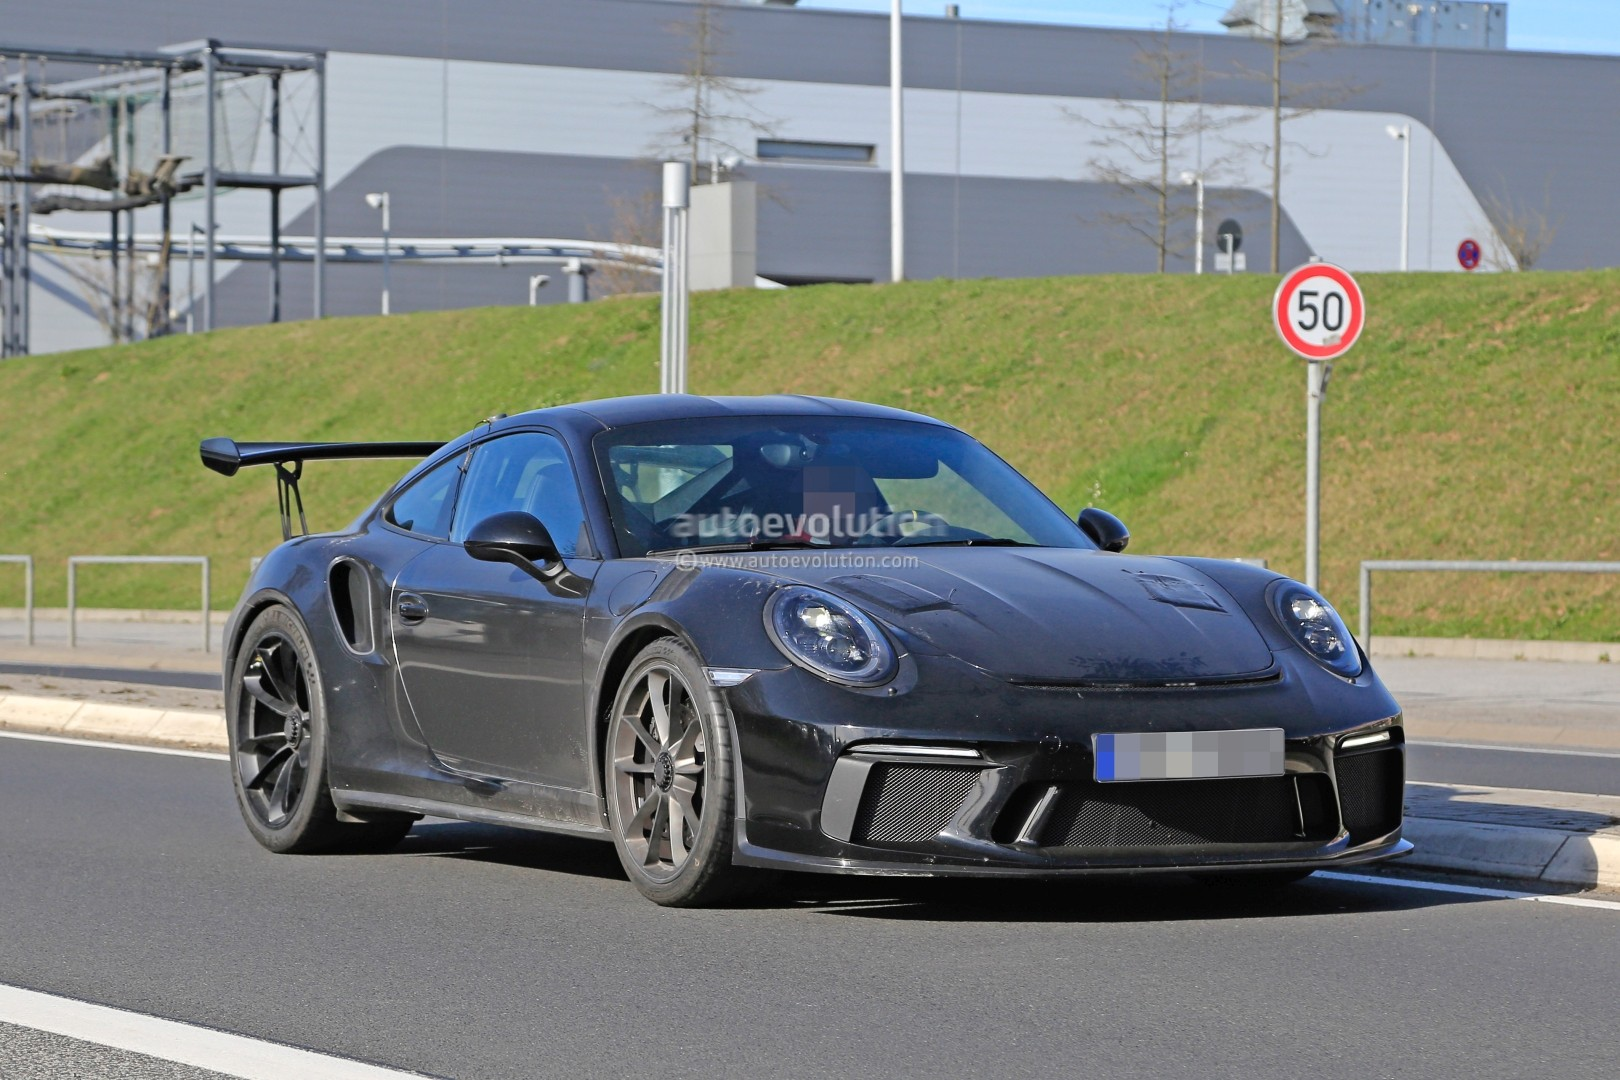 New Porsche 911 GT3 RS Spied with 911 R Diffuser, May Get 4.2L ... on blue green corvair, blue green mustang, blue green hummer, blue green camaro, blue green ford, blue green bmw, blue green jeep, blue green mazda, blue green miata, blue green trans am, blue green jaguar, blue green cadillac, blue green corvette, blue green sports car,